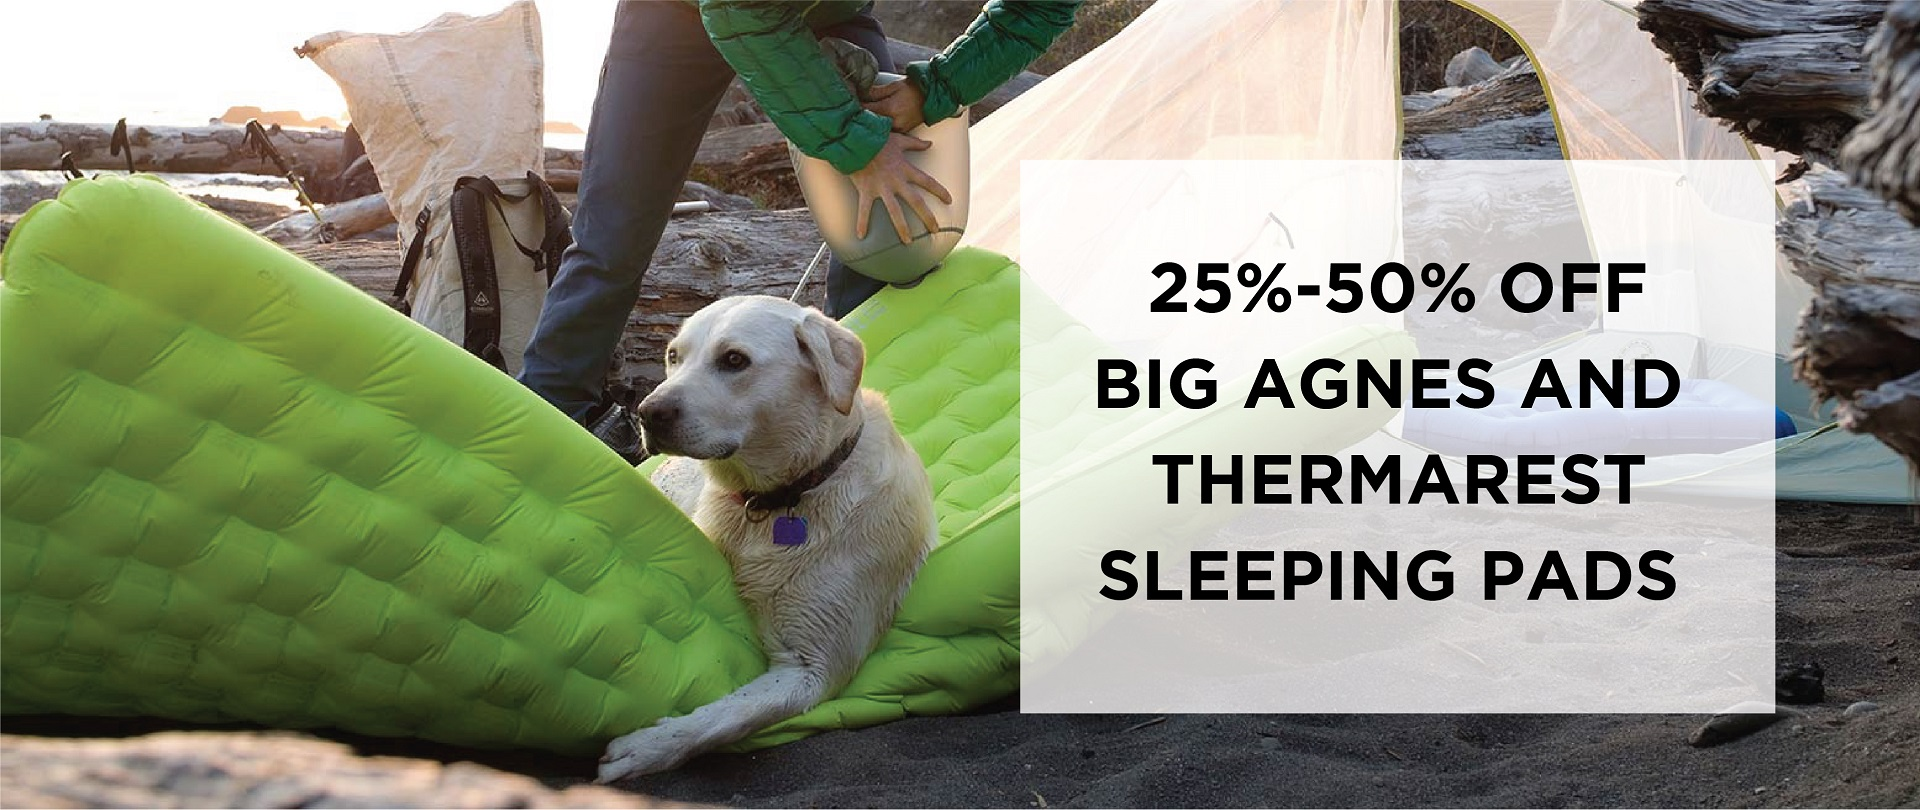 Sleeping Pads on SALE!